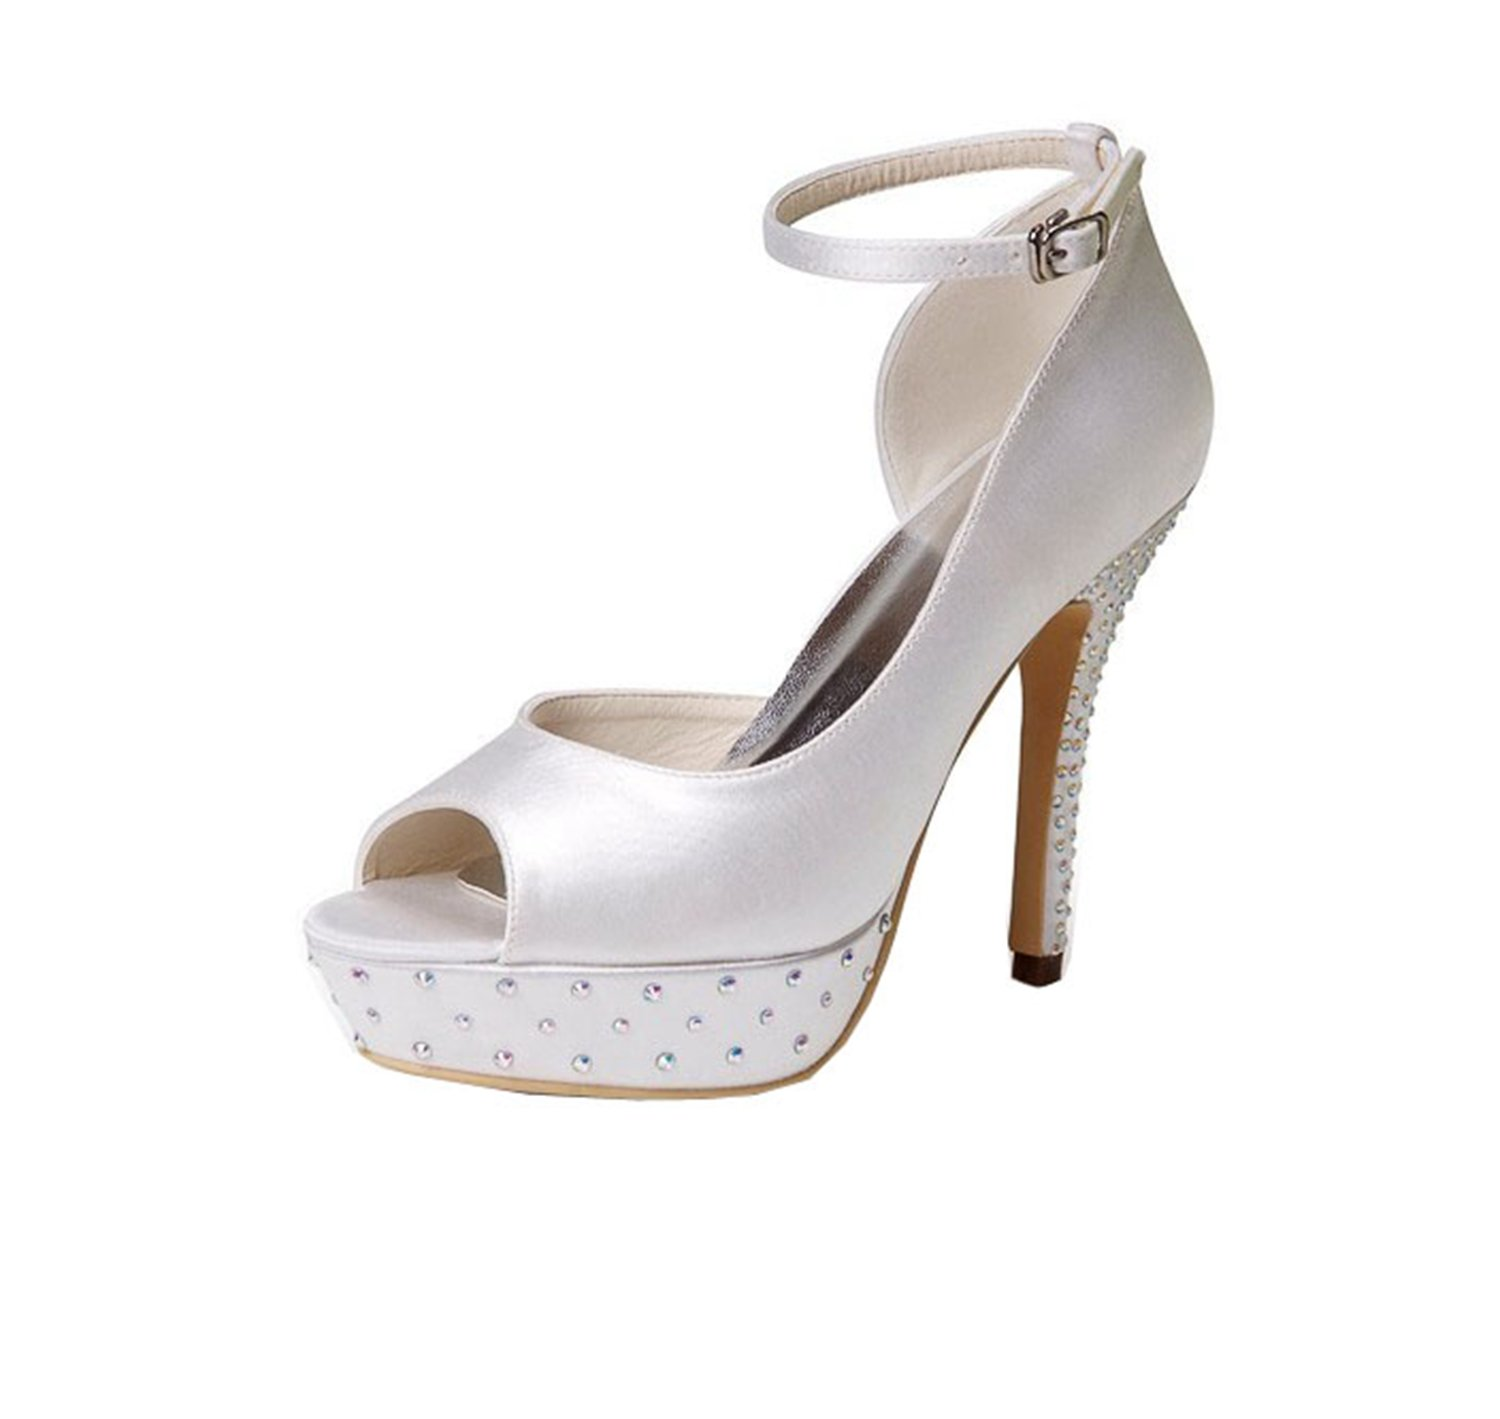 Minitoo , Ivory-12cm Sandales Sandales pour femme femme Ivory-12cm Heel cb2ed39 - deadsea.space